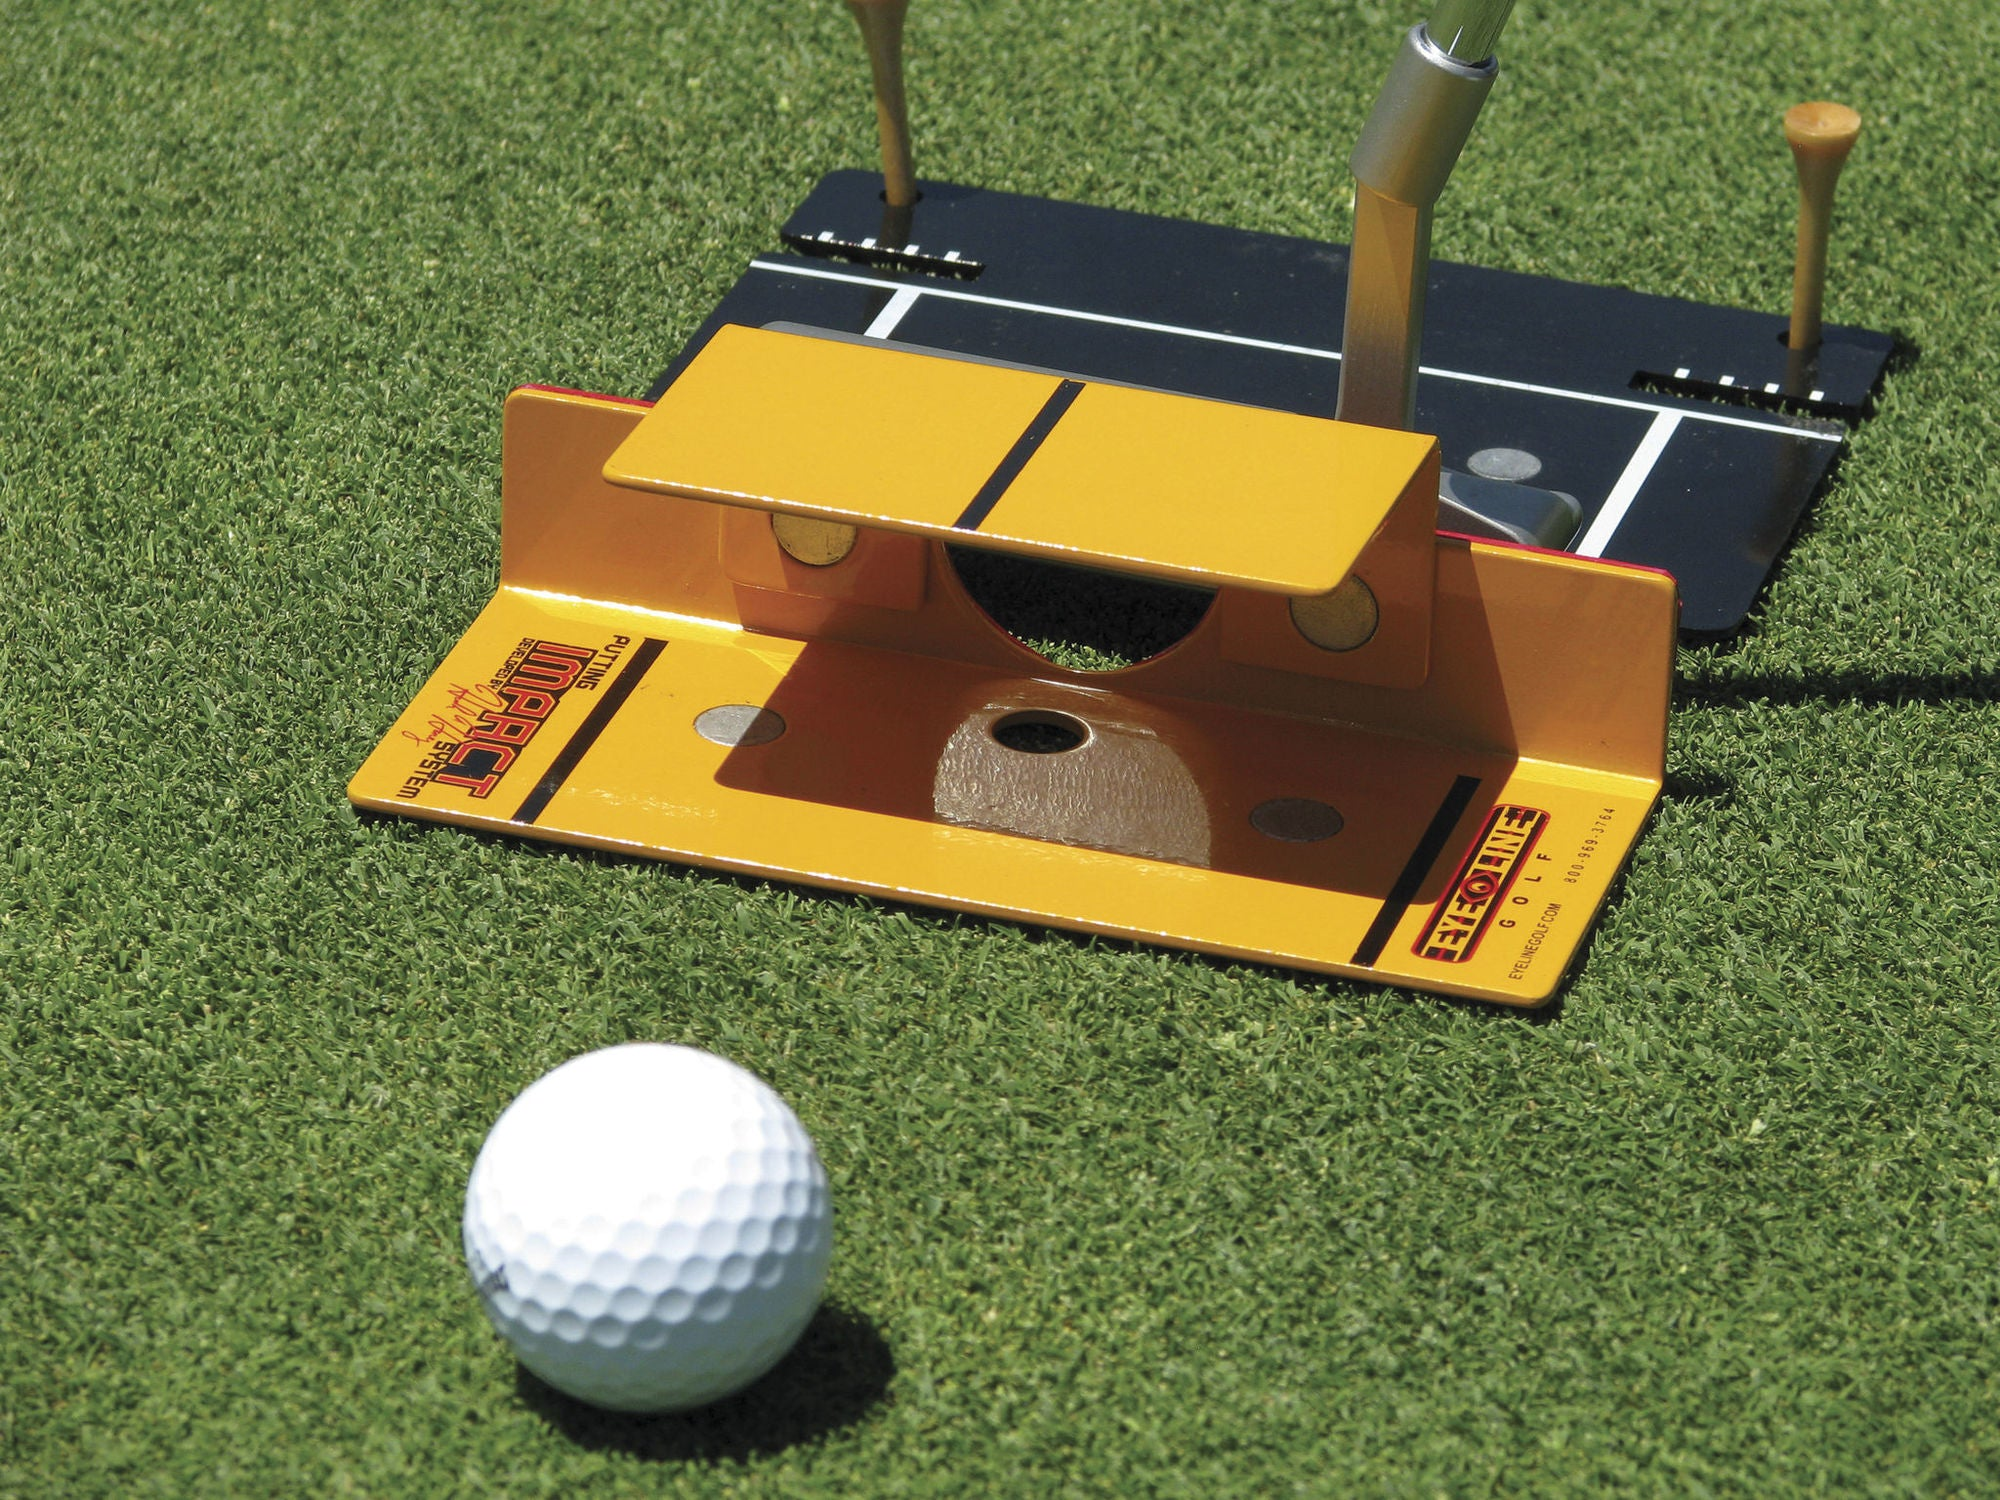 Eyeline Golf - Putting Impact System